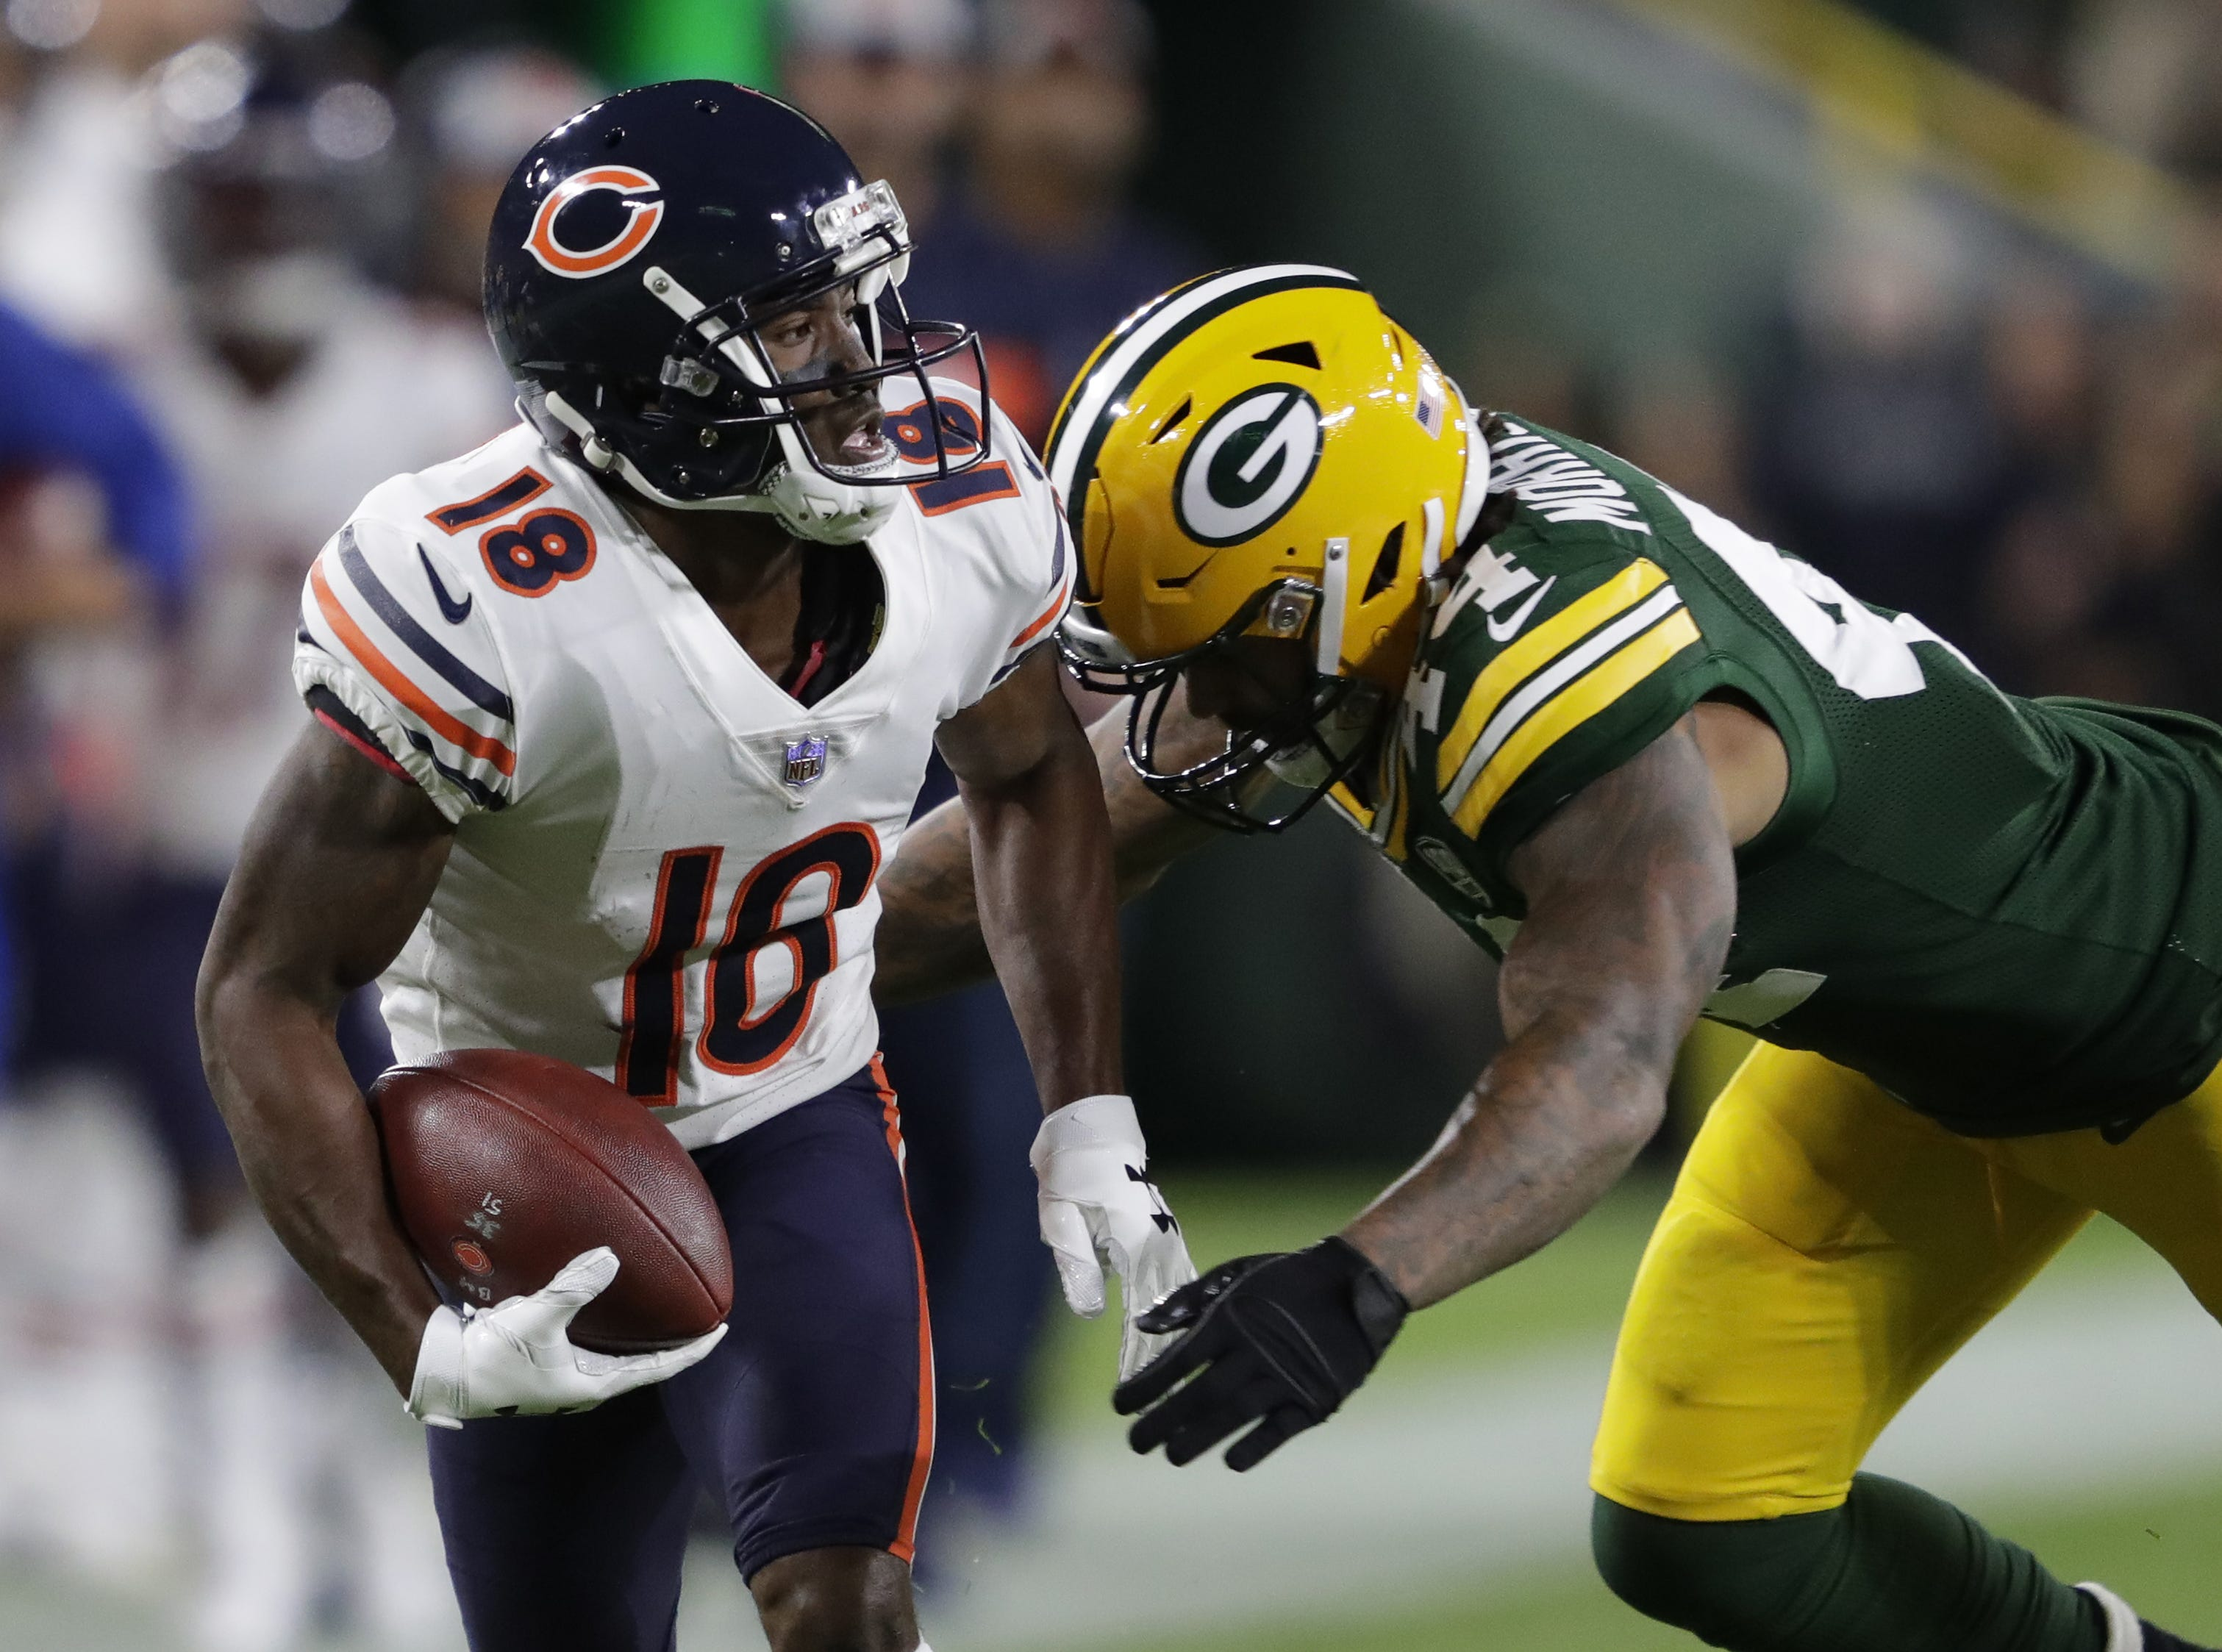 Chicago Bears wide receiver Taylor Gabriel (18) breaks away for a long pass reception against Green Bay Packers linebacker Antonio Morrison (44) in the first quarter Sunday, Sept. 9, 2018, at Lambeau Field in Green Bay, Wis.